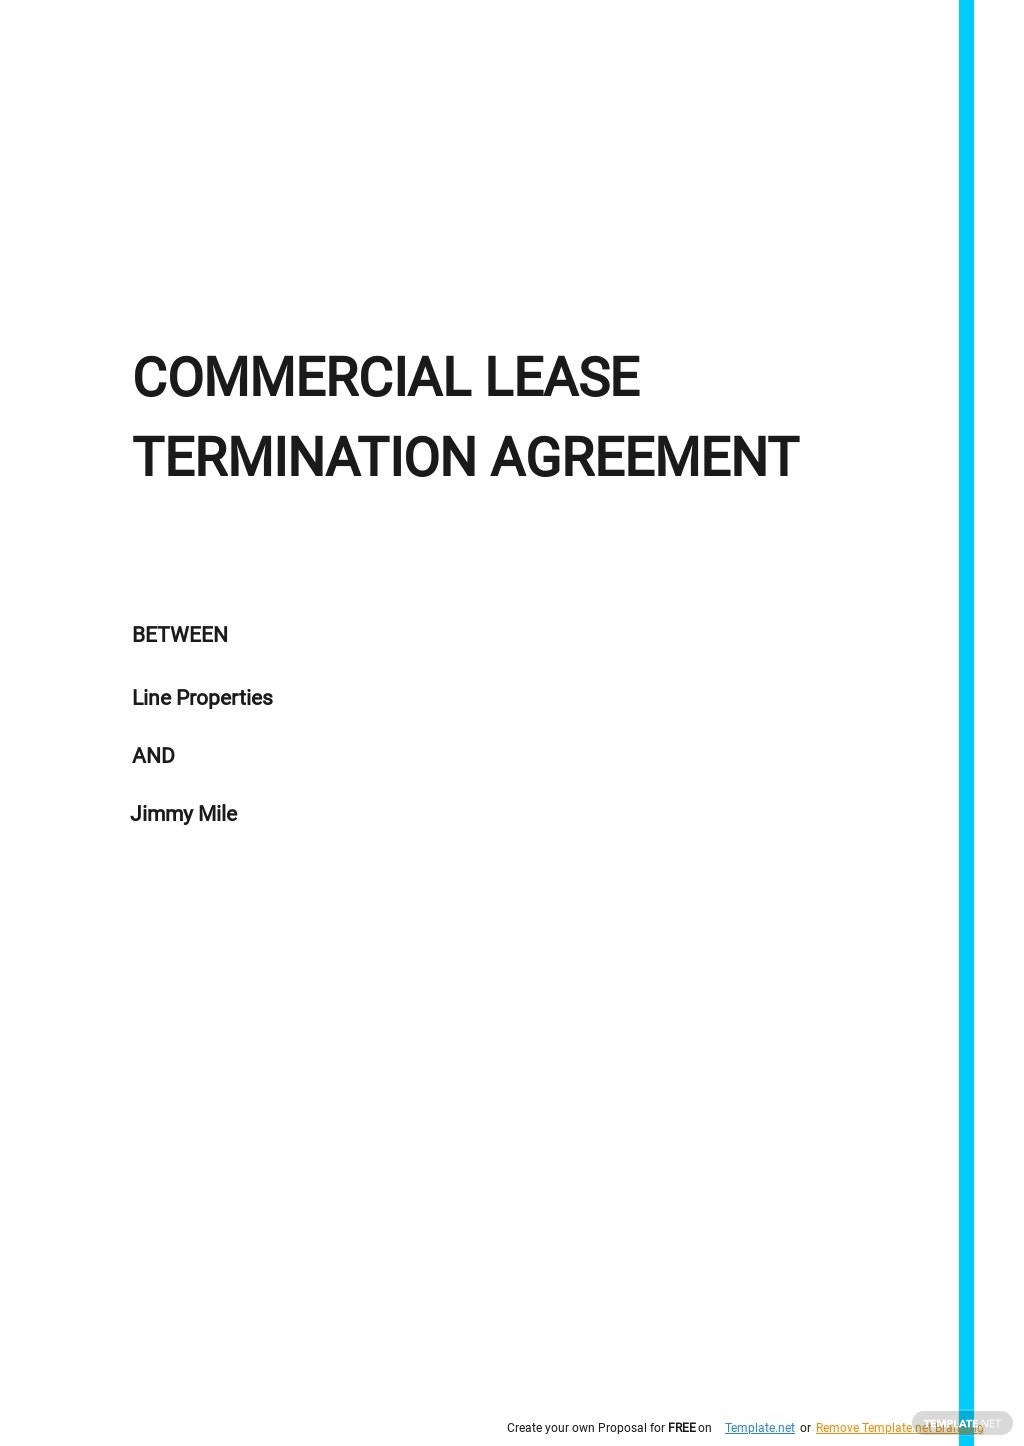 Commercial Lease Termination Agreement Template.jpe